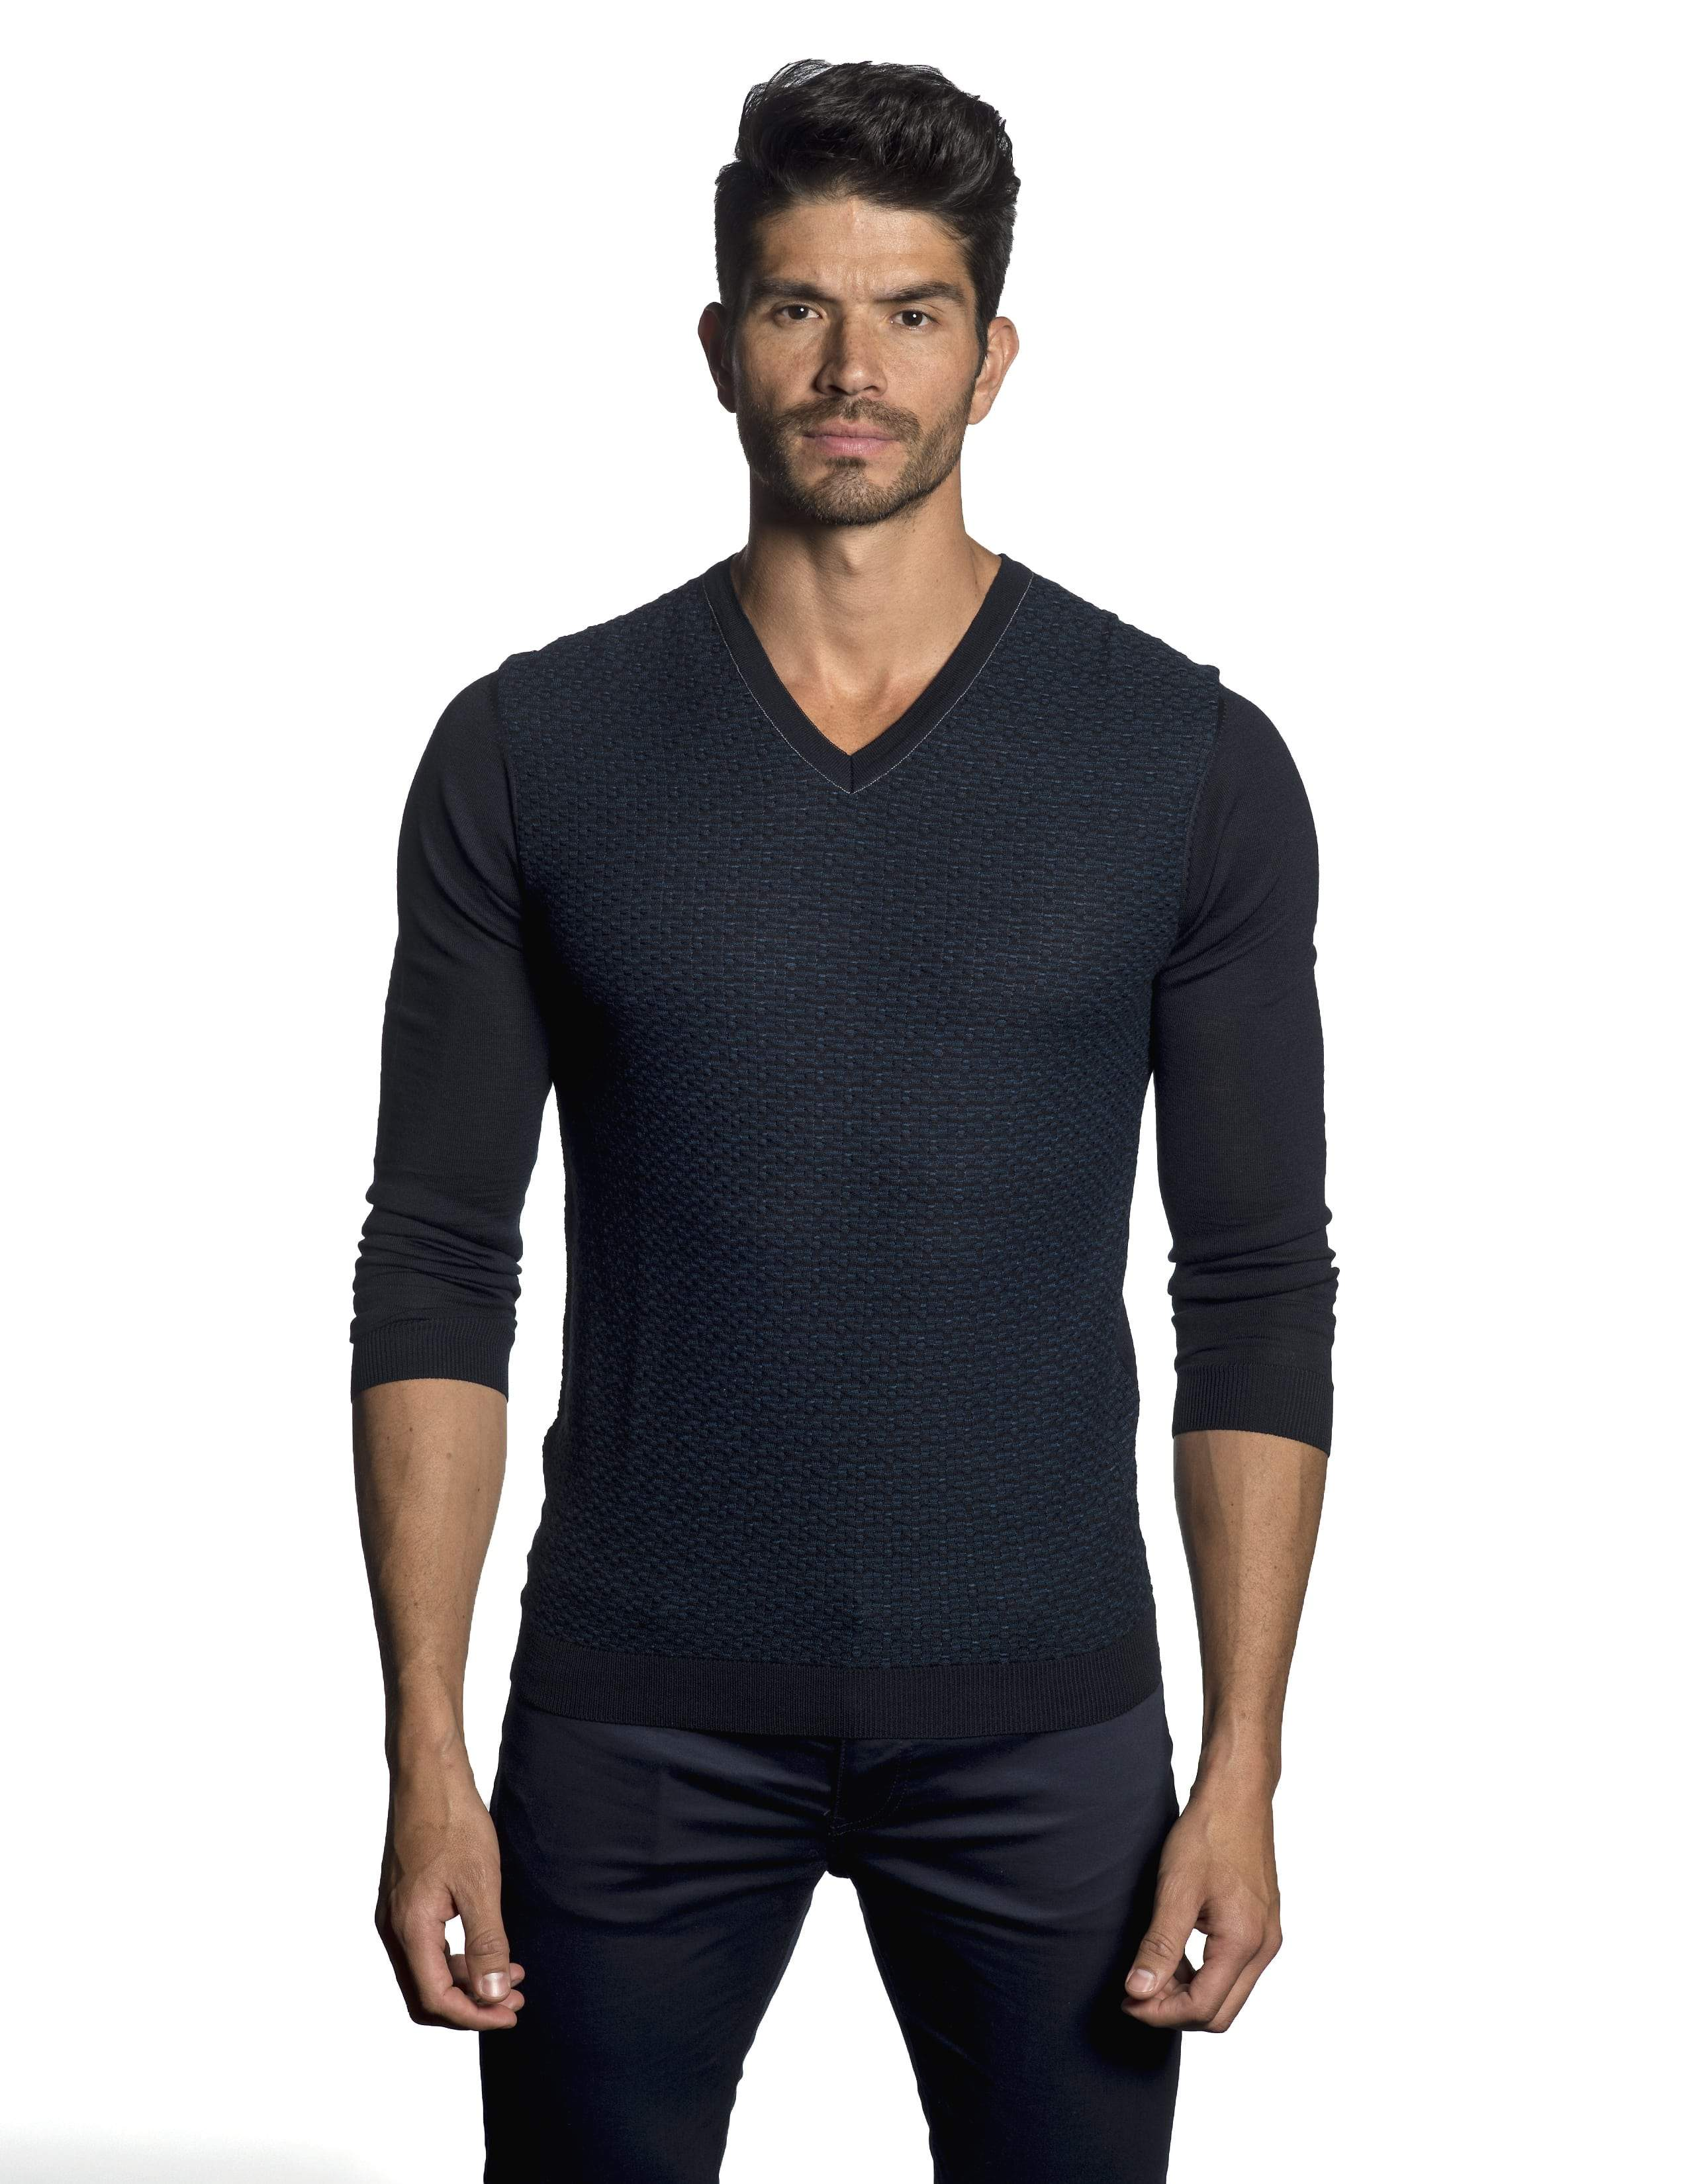 Navy Sweater for men Front JL-04 from Jared Lang